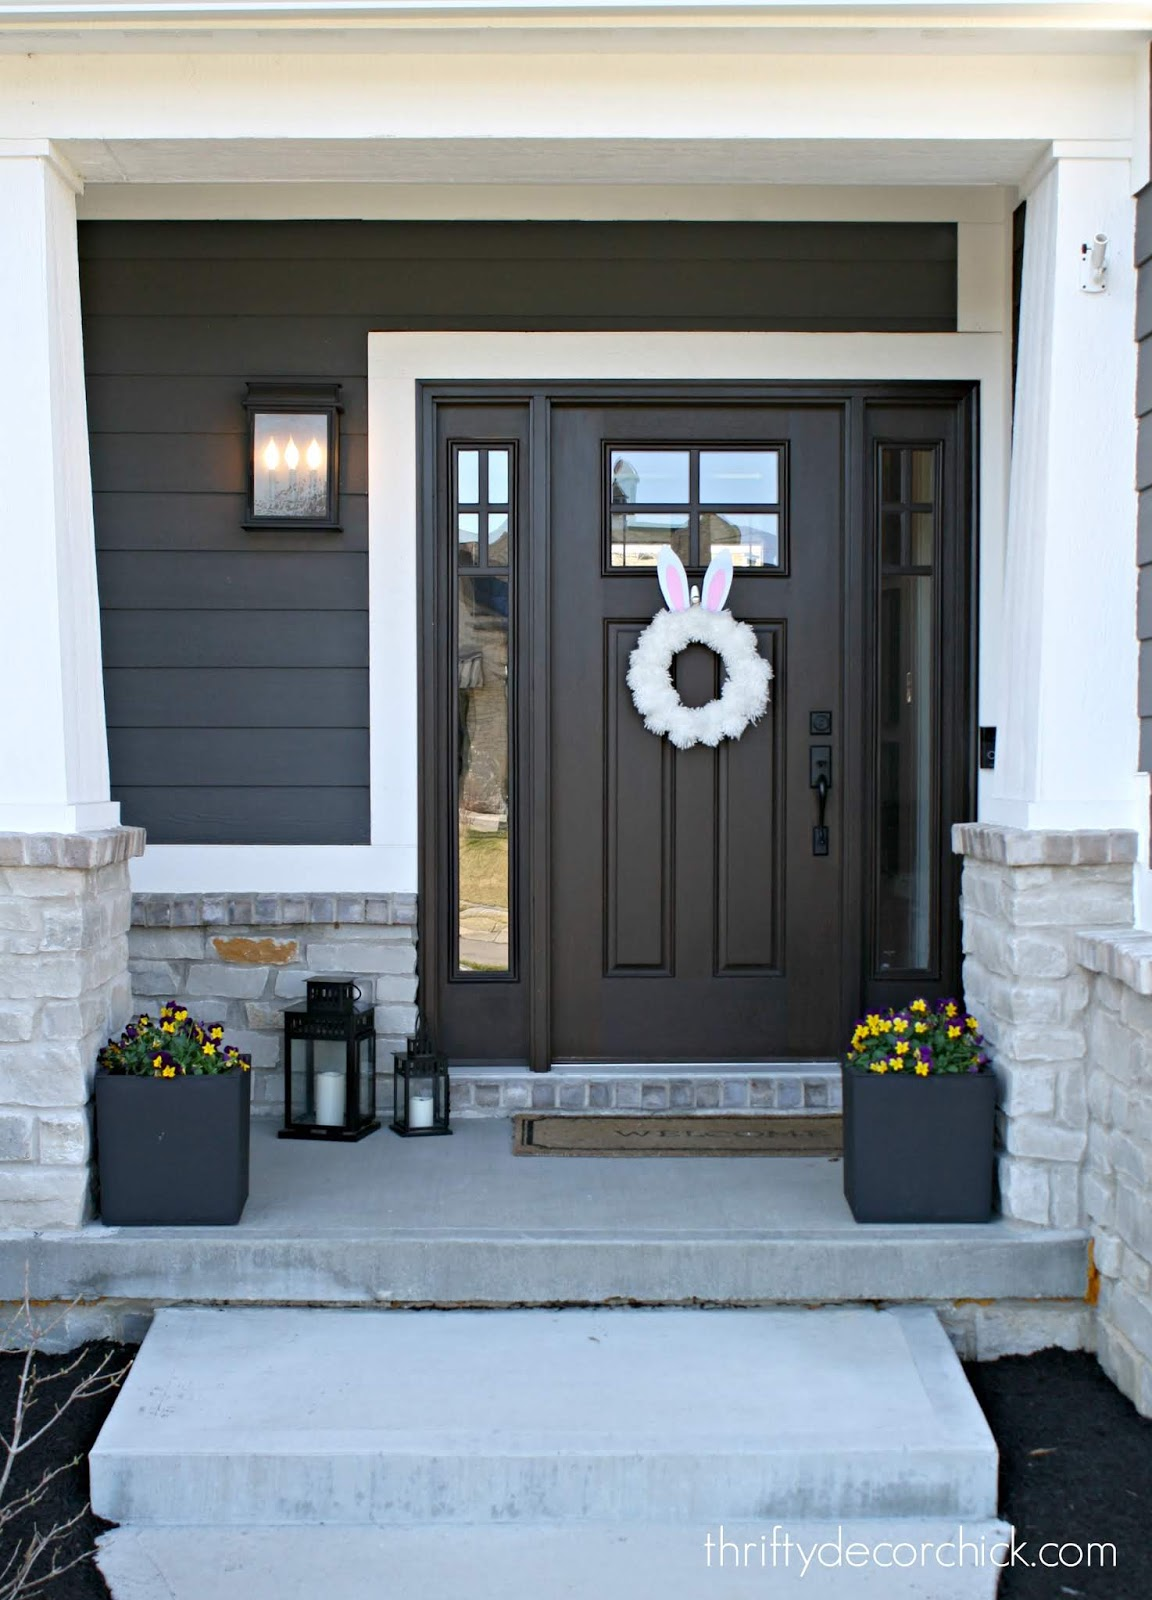 Craftsman style porch and doors with windows